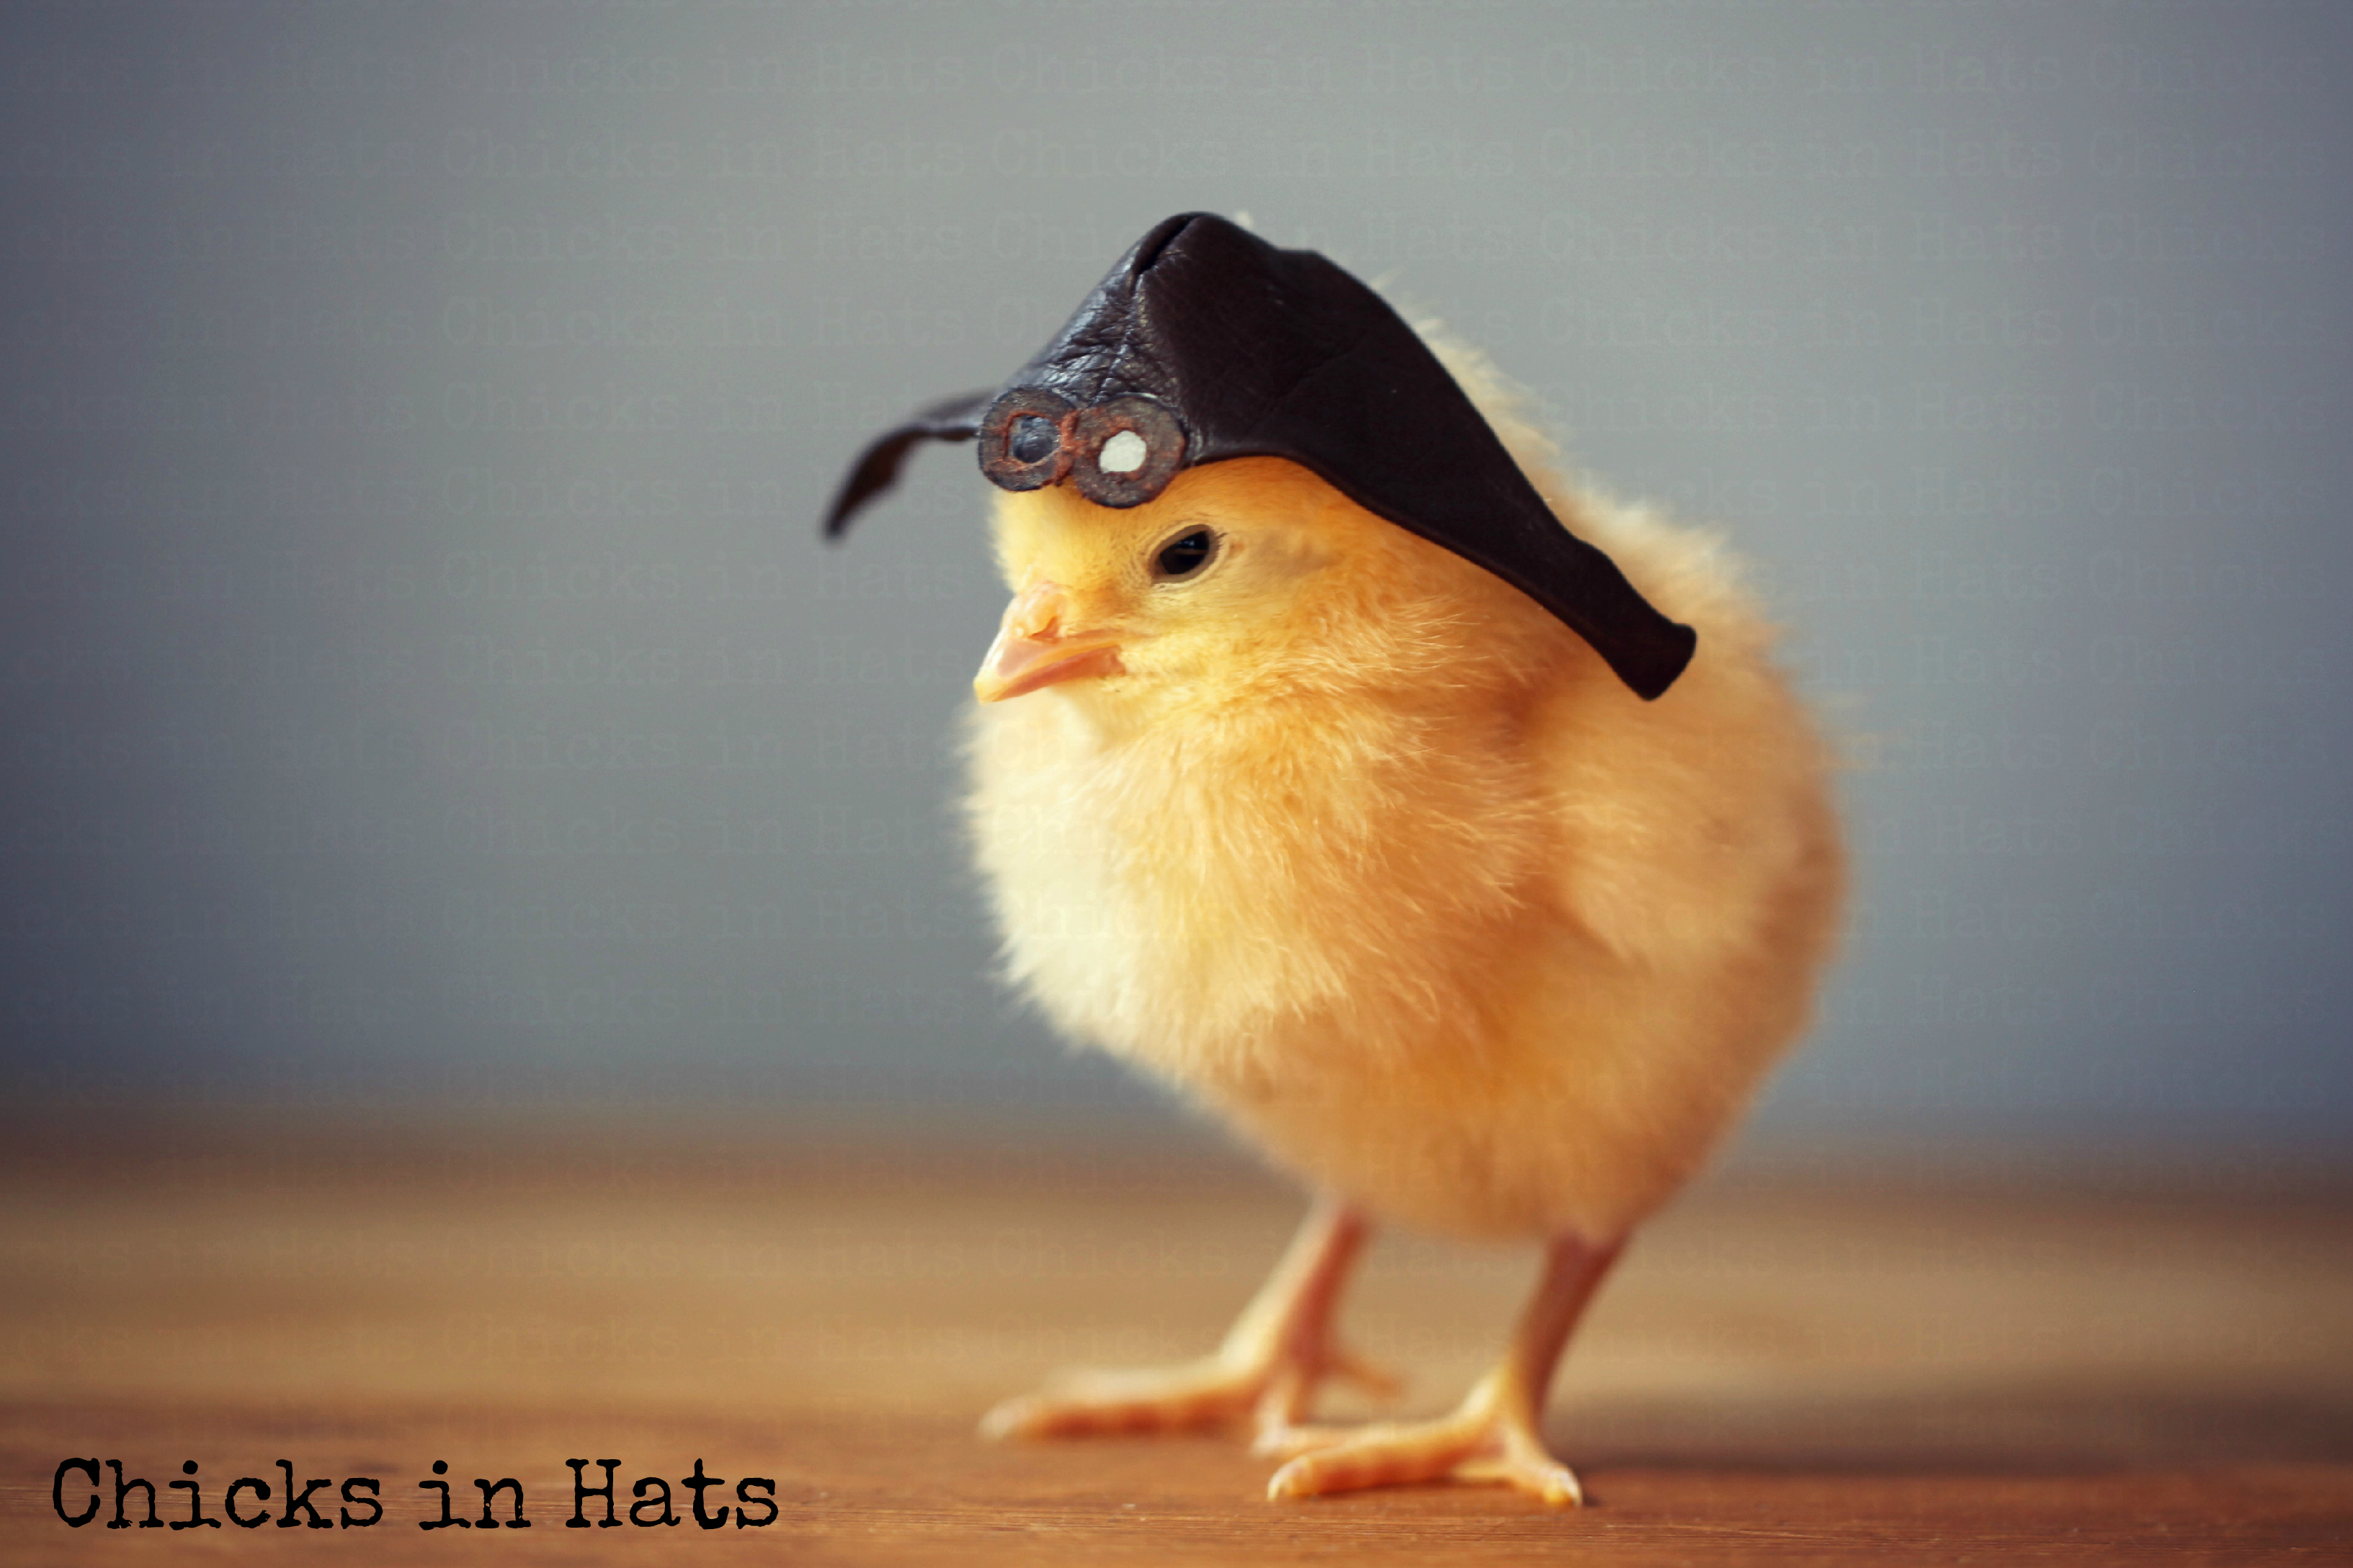 Chicks in Hats.